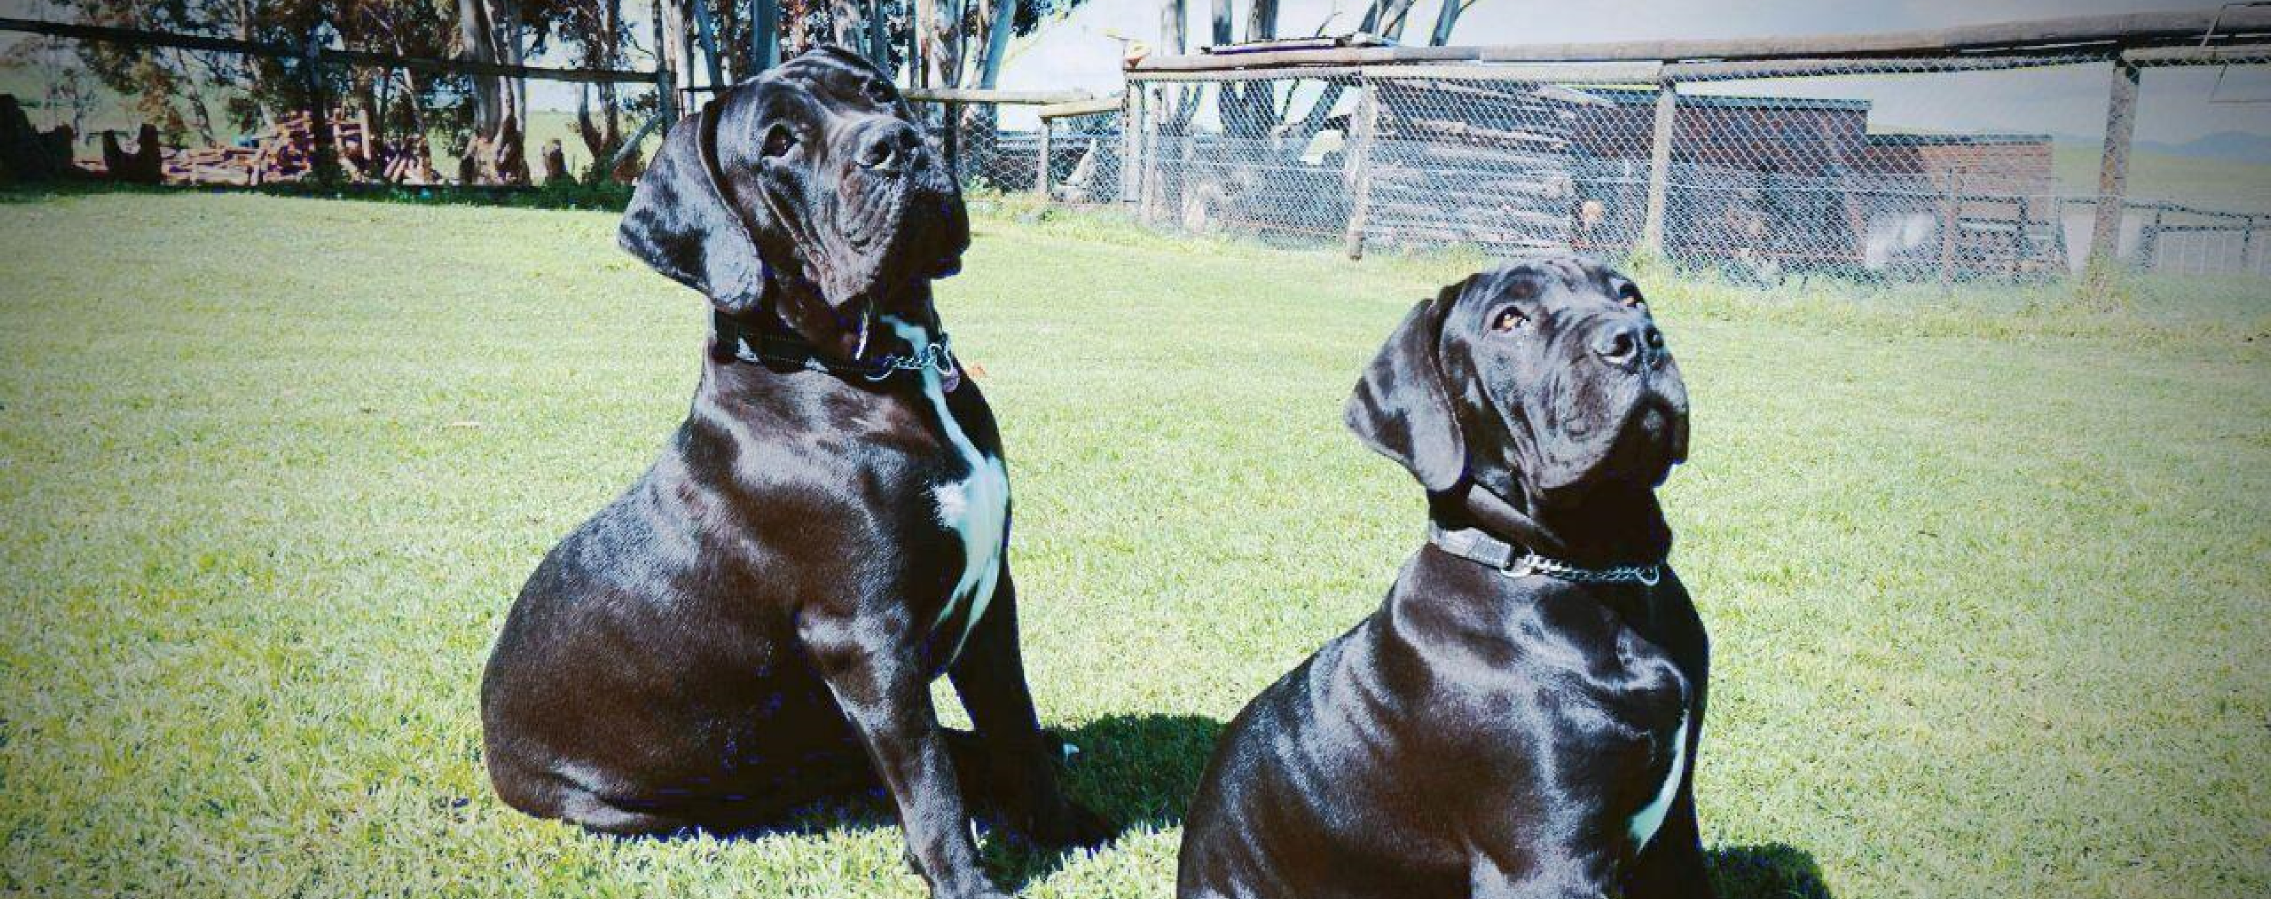 Overberg vet dogs3png.png